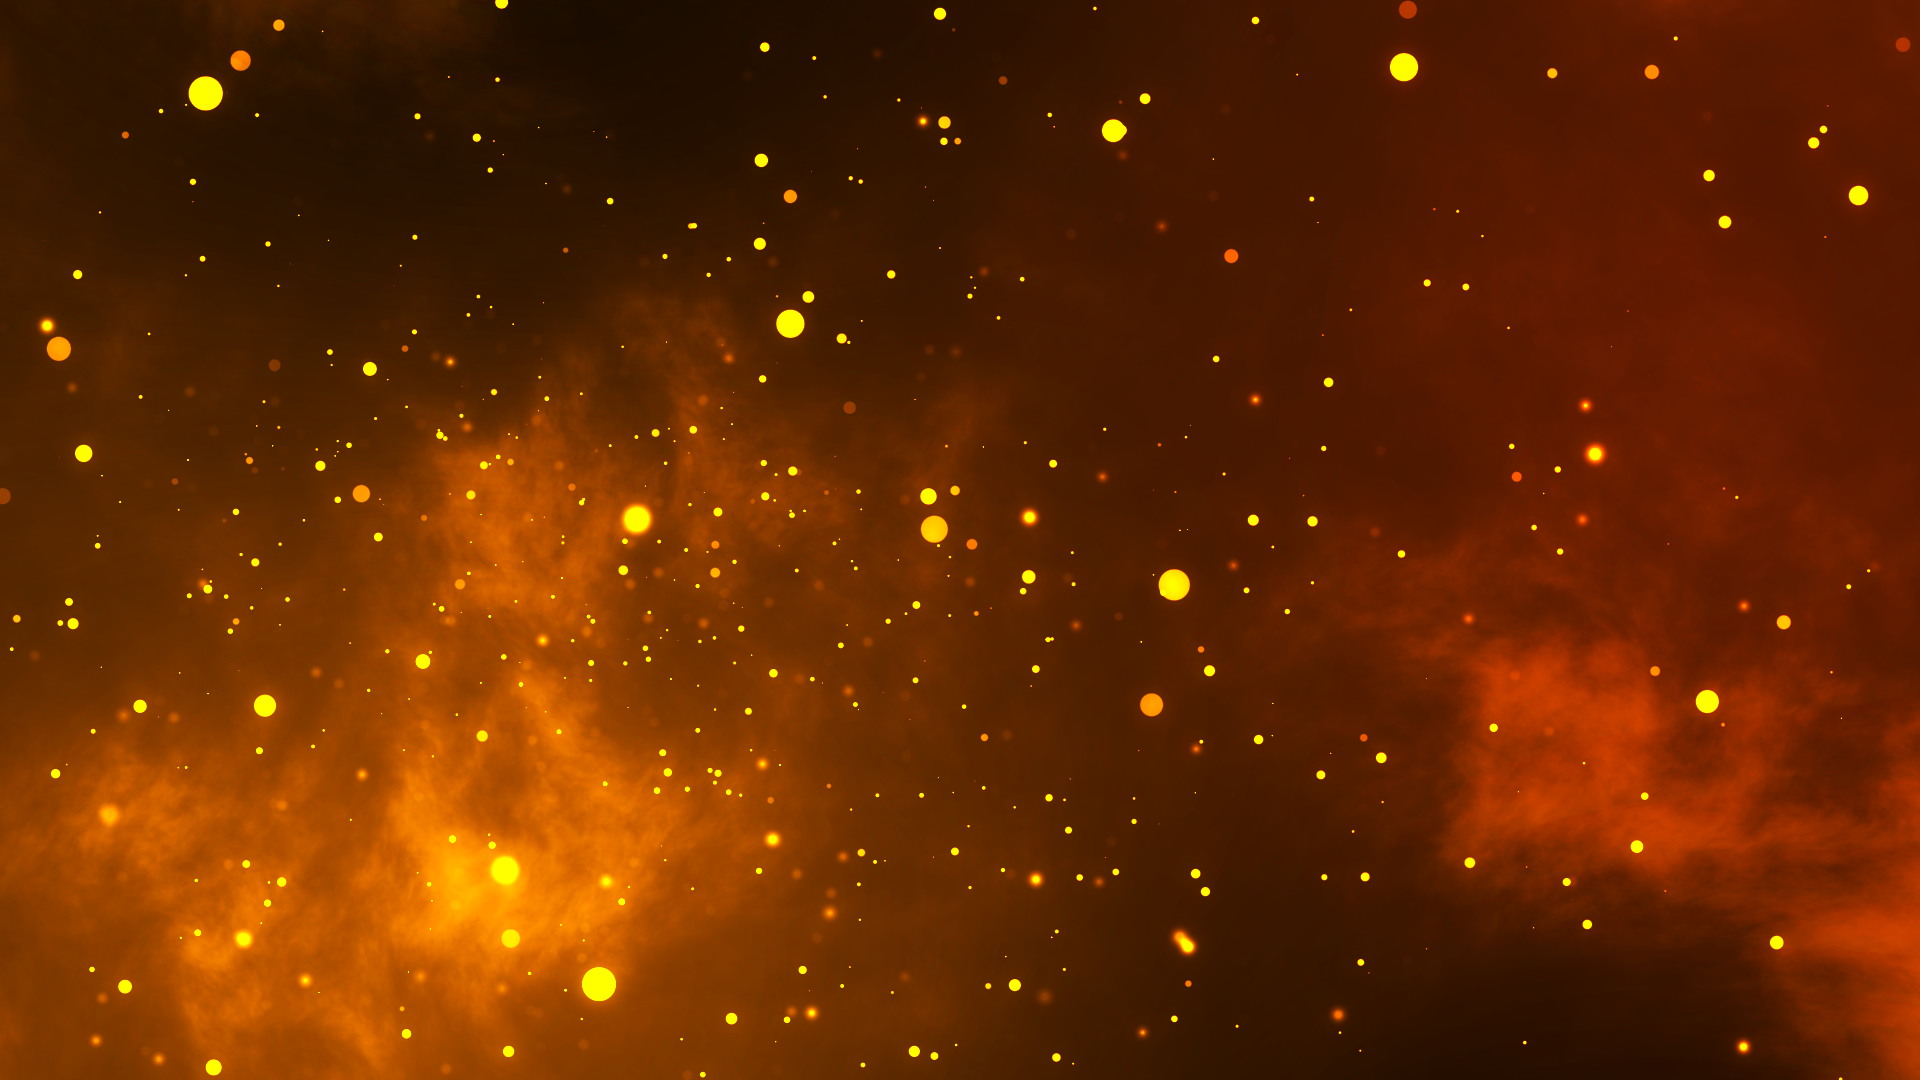 After Effects Particle Background Animation Tutorial Gold Particles Adobe After Effects Tutorial Planos De Fundo Wallpaper Fundos